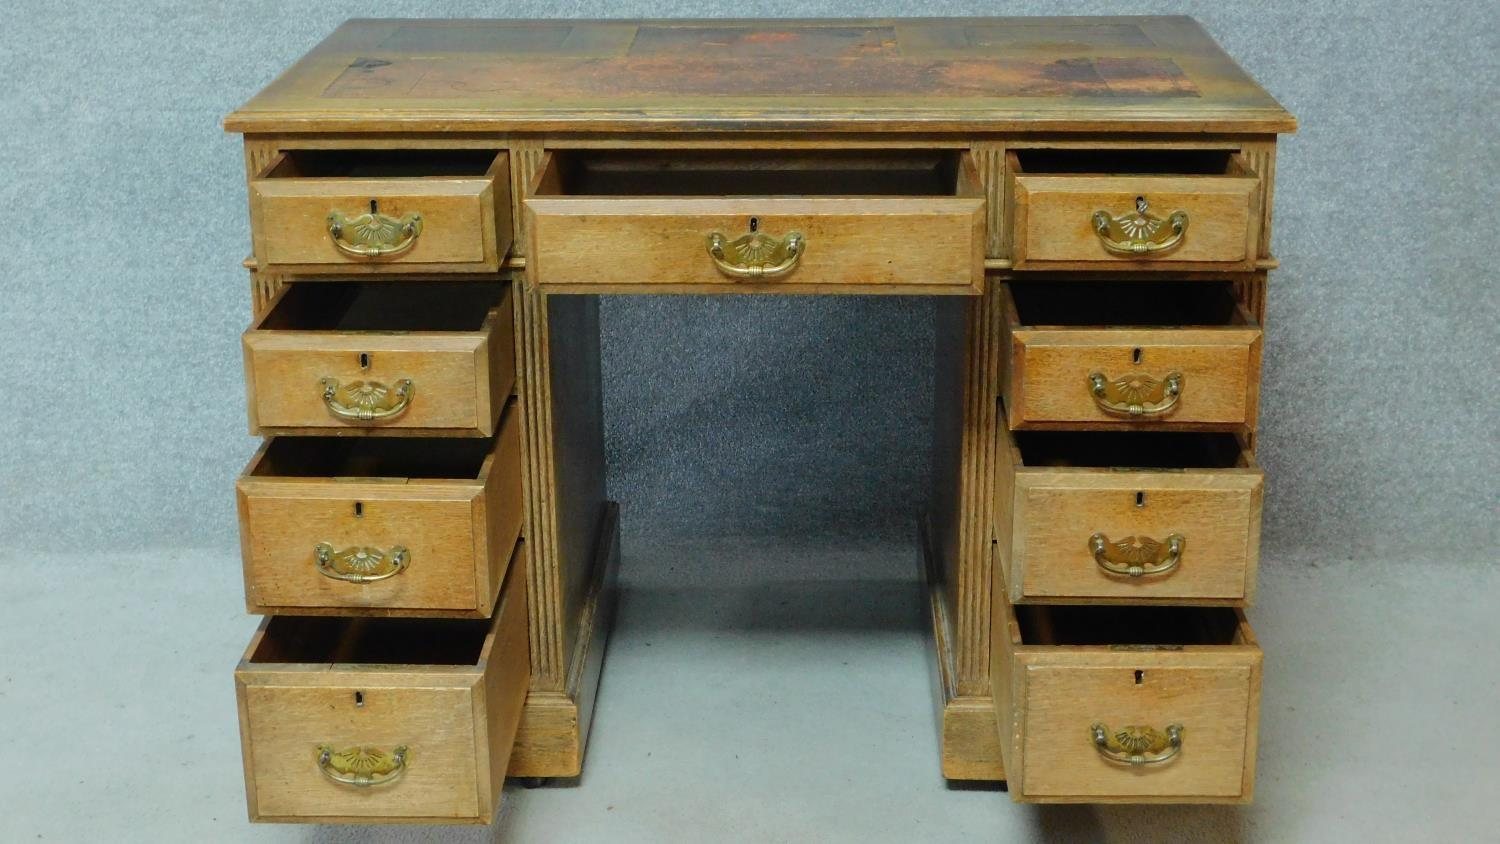 A late 19th century oak pedestal desk with leather inset top above an arrangement of nine drawers - Image 3 of 5